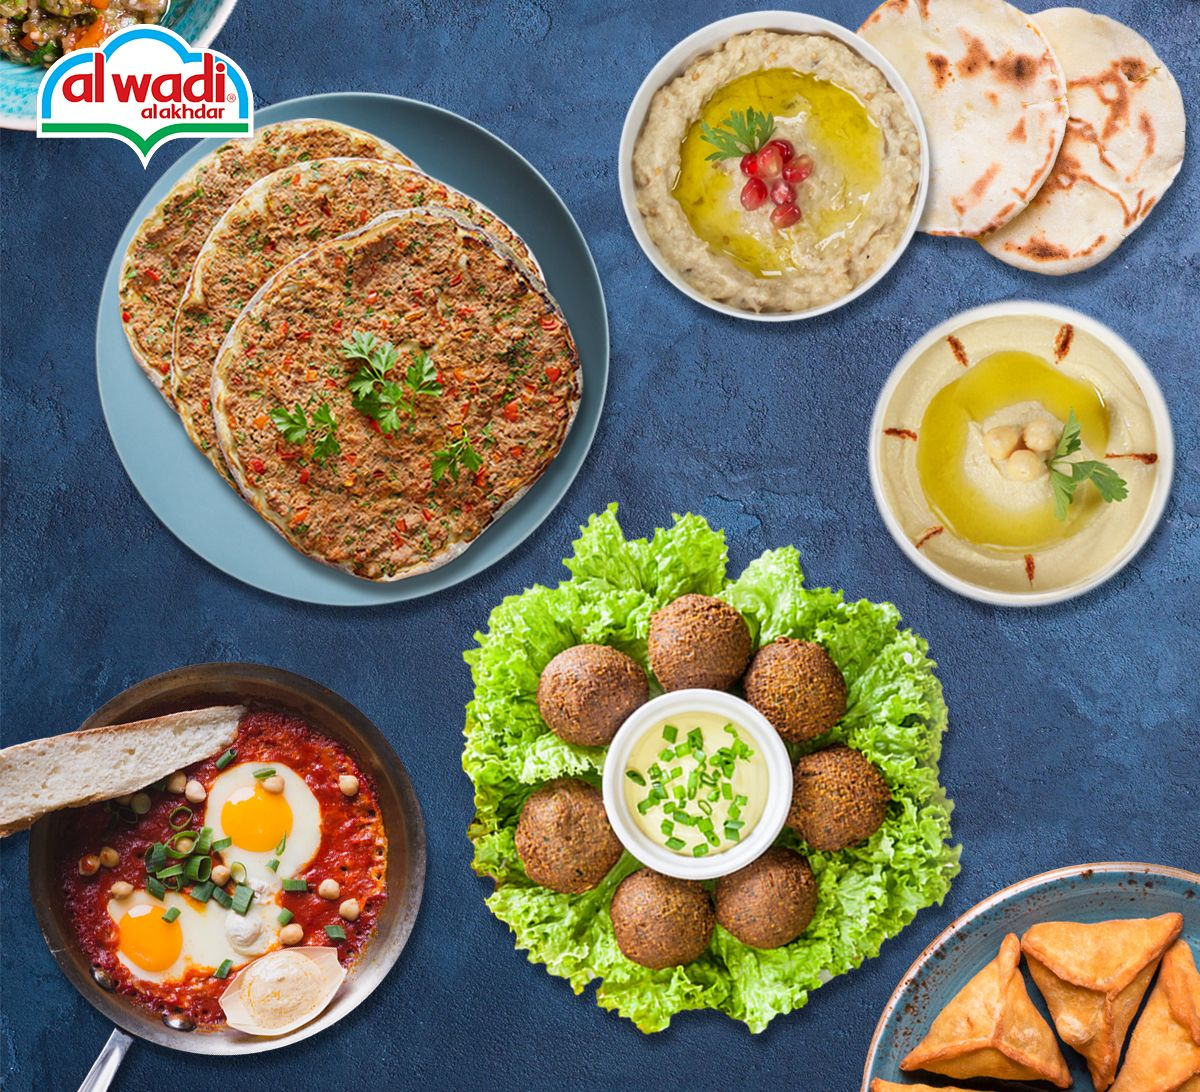 Al Wadi Al Akhdar!  The delicious Lebanese flavor you long for, the taste of home away from home!